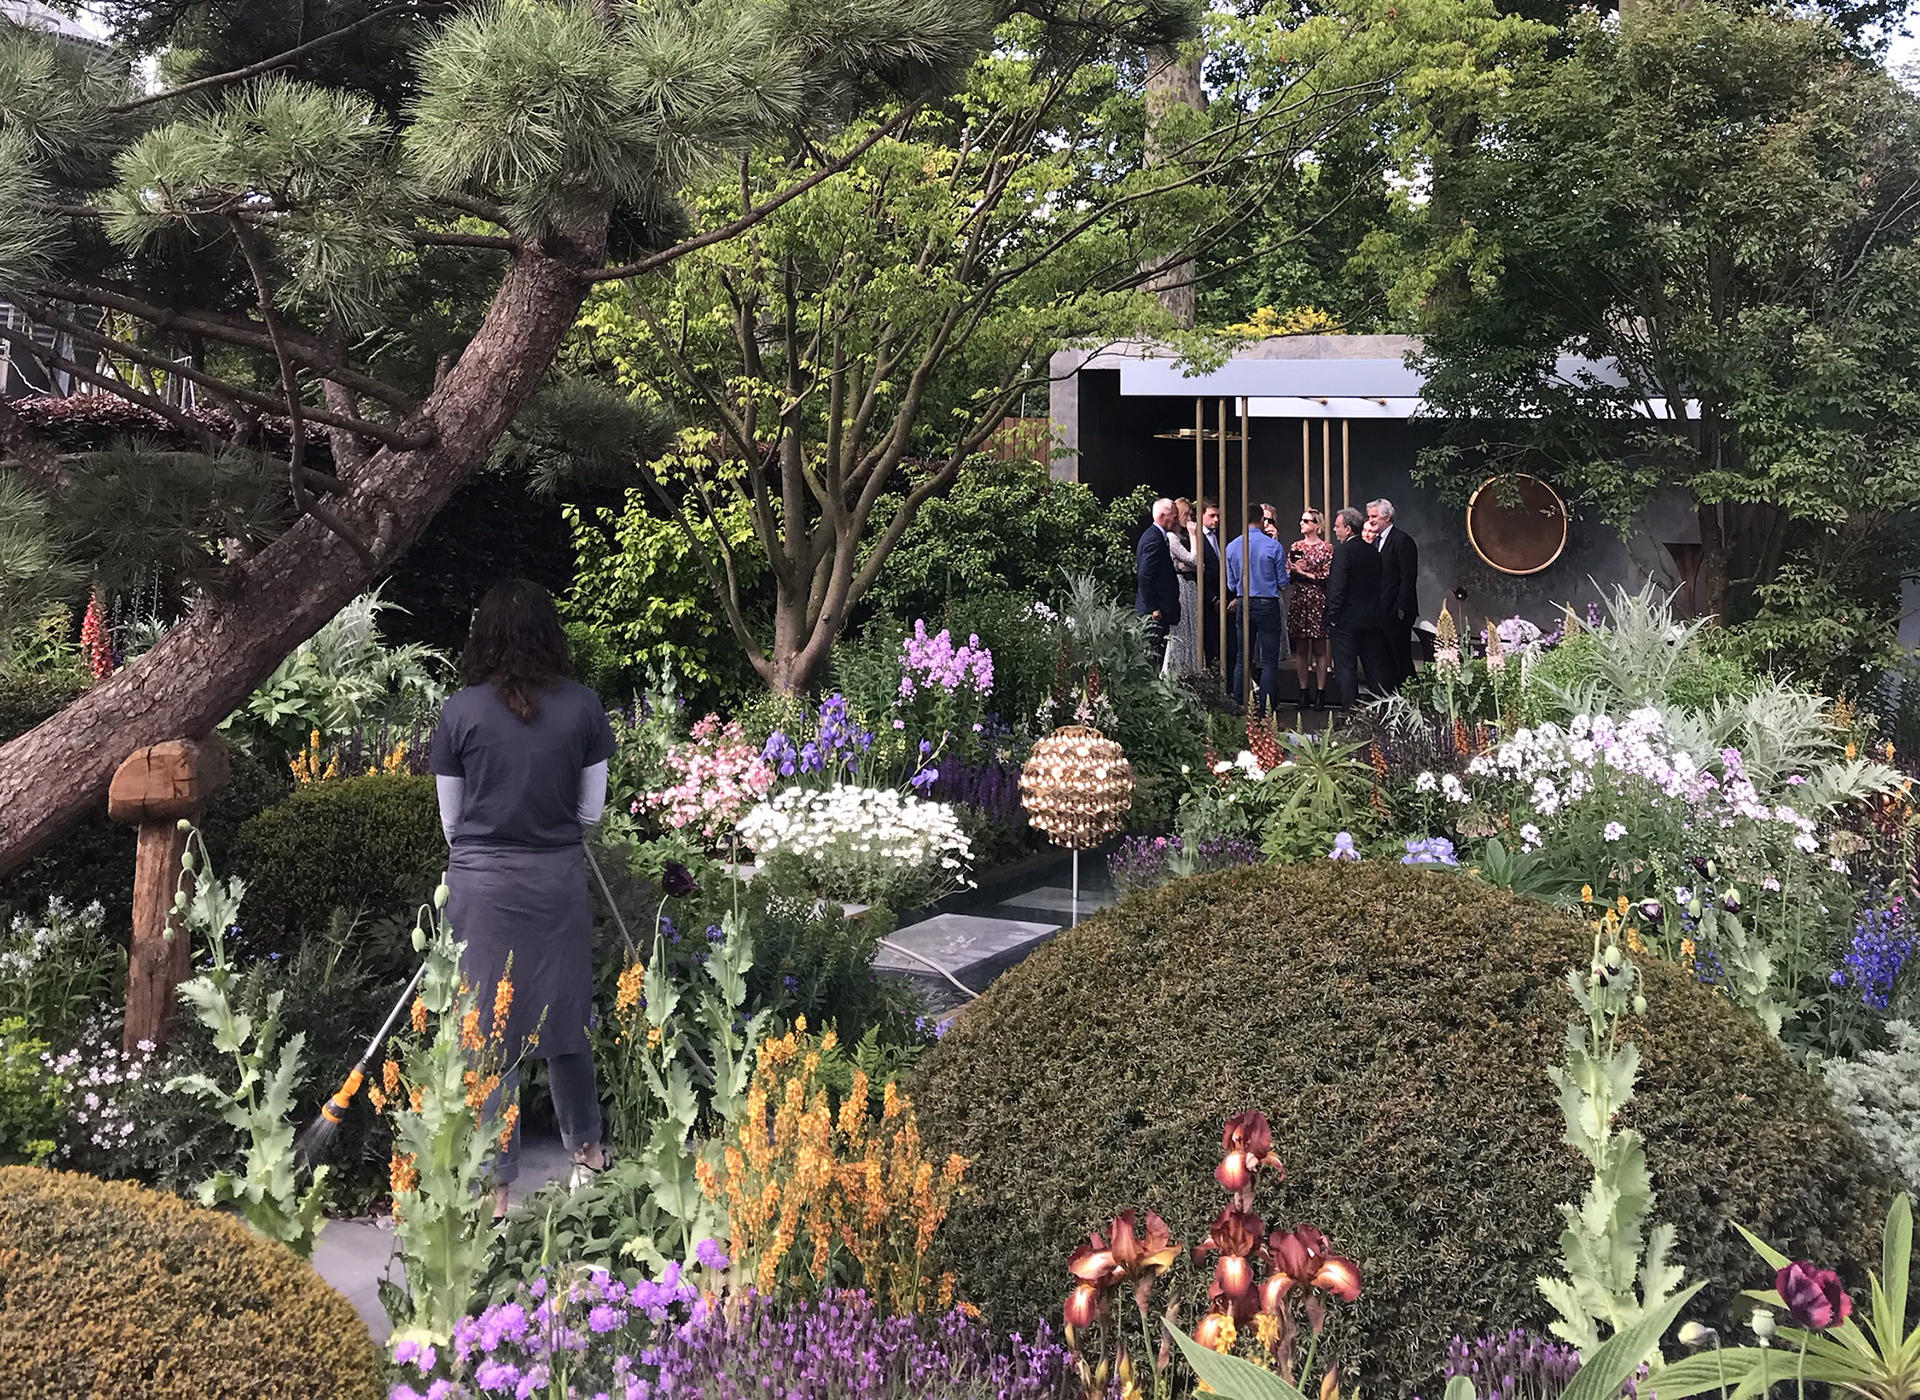 2019_May_Volvo_Electric_machine_lights_up_award_winning_garden_at_the_RHS_Chelsea_Flower_Show_02